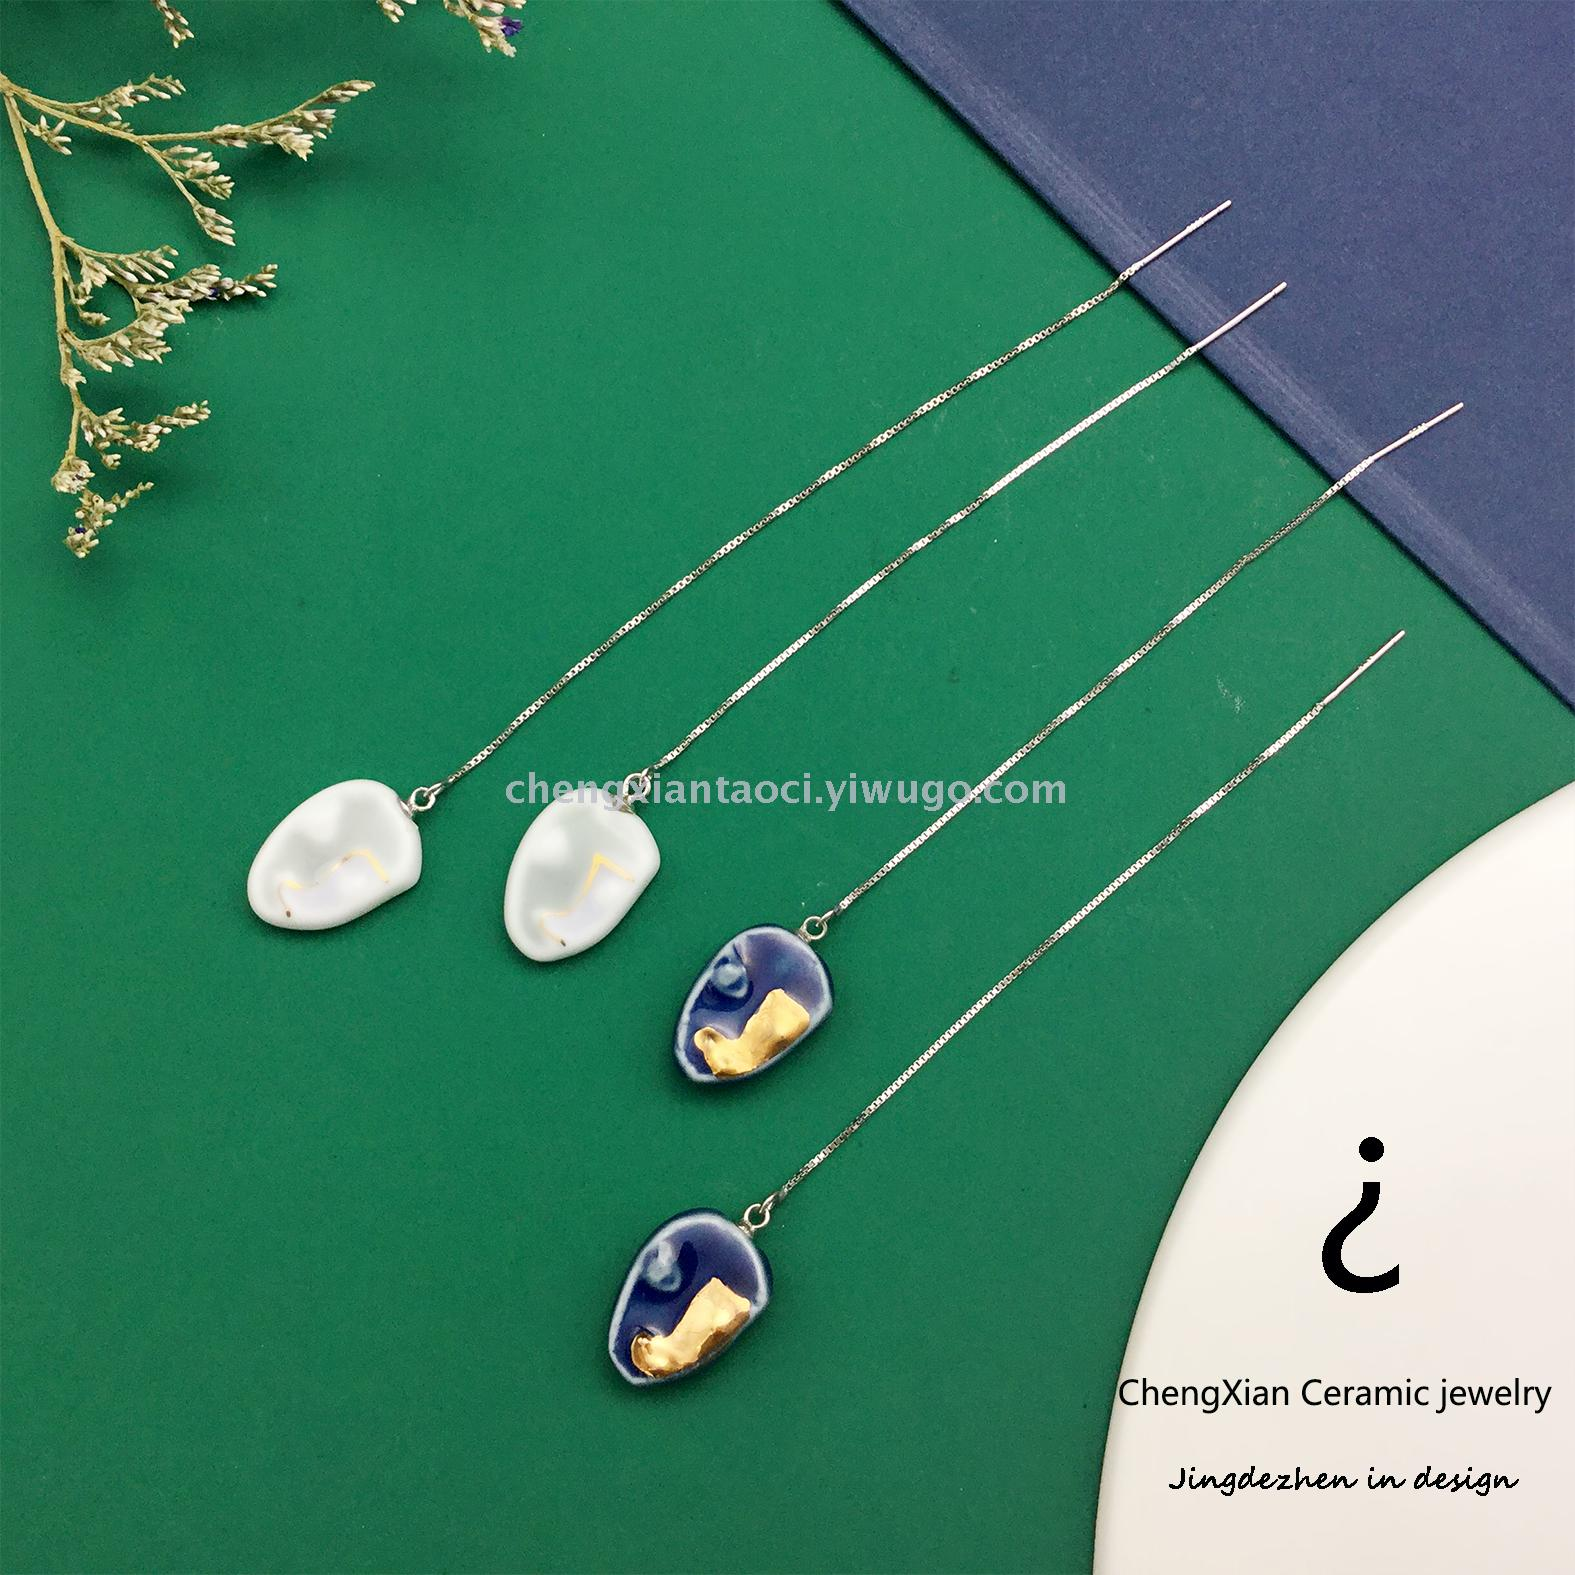 Supply Present Jewelry Original Brand 925 Pure Silver Pure Handmade Necklace Earrings Are Still Manufacturers Direct